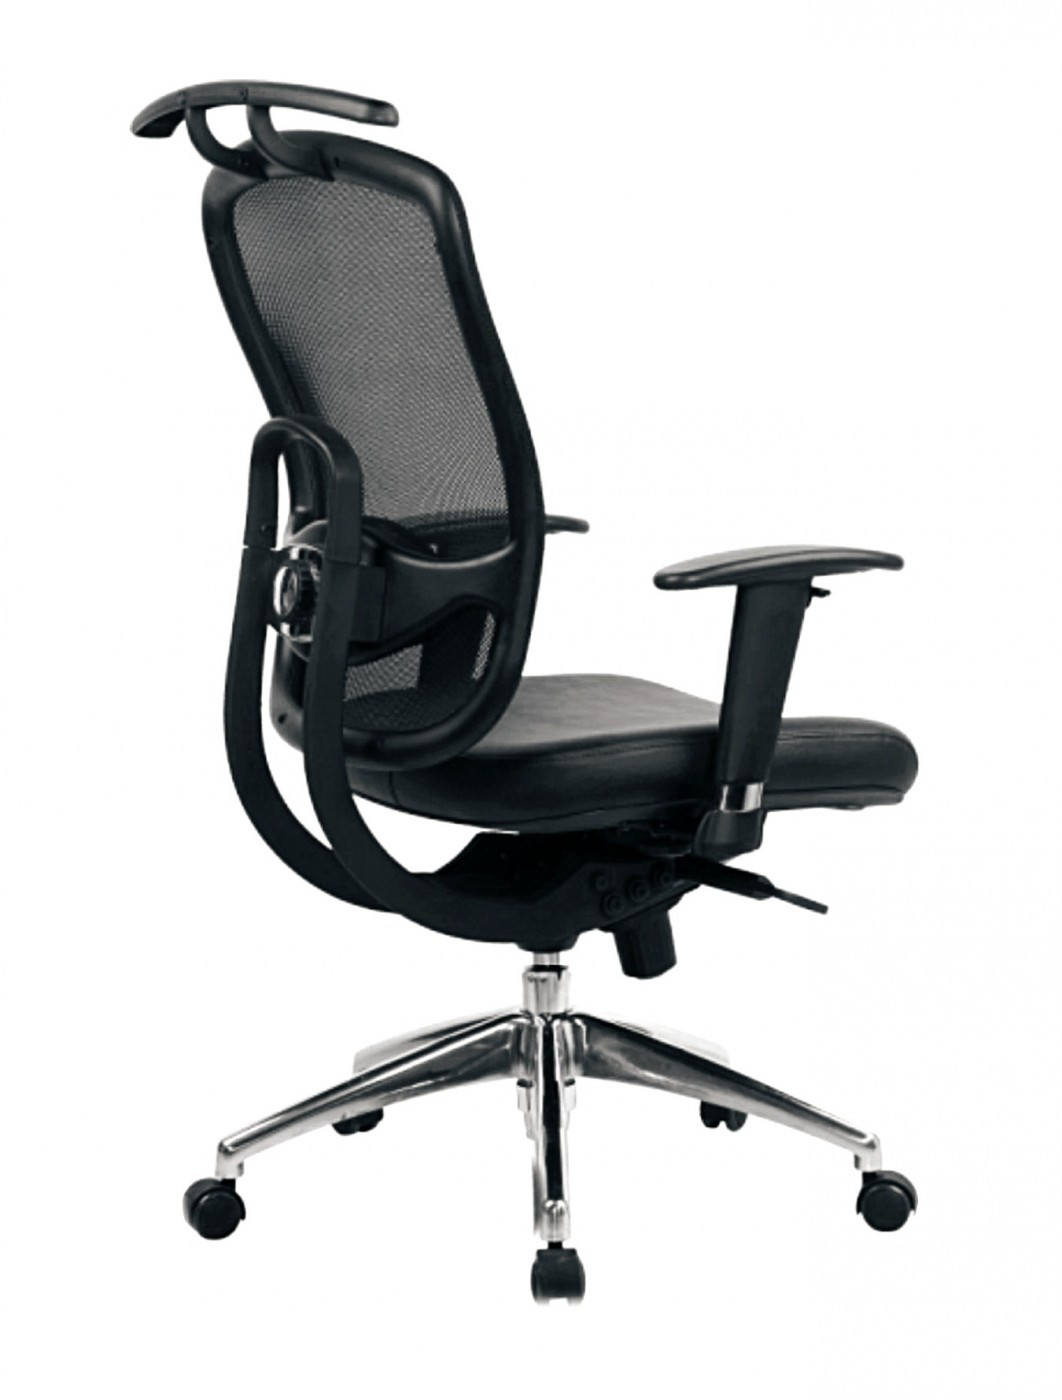 Freedom Executive Armchair 80HBSY/ACH | 121 Office Furniture